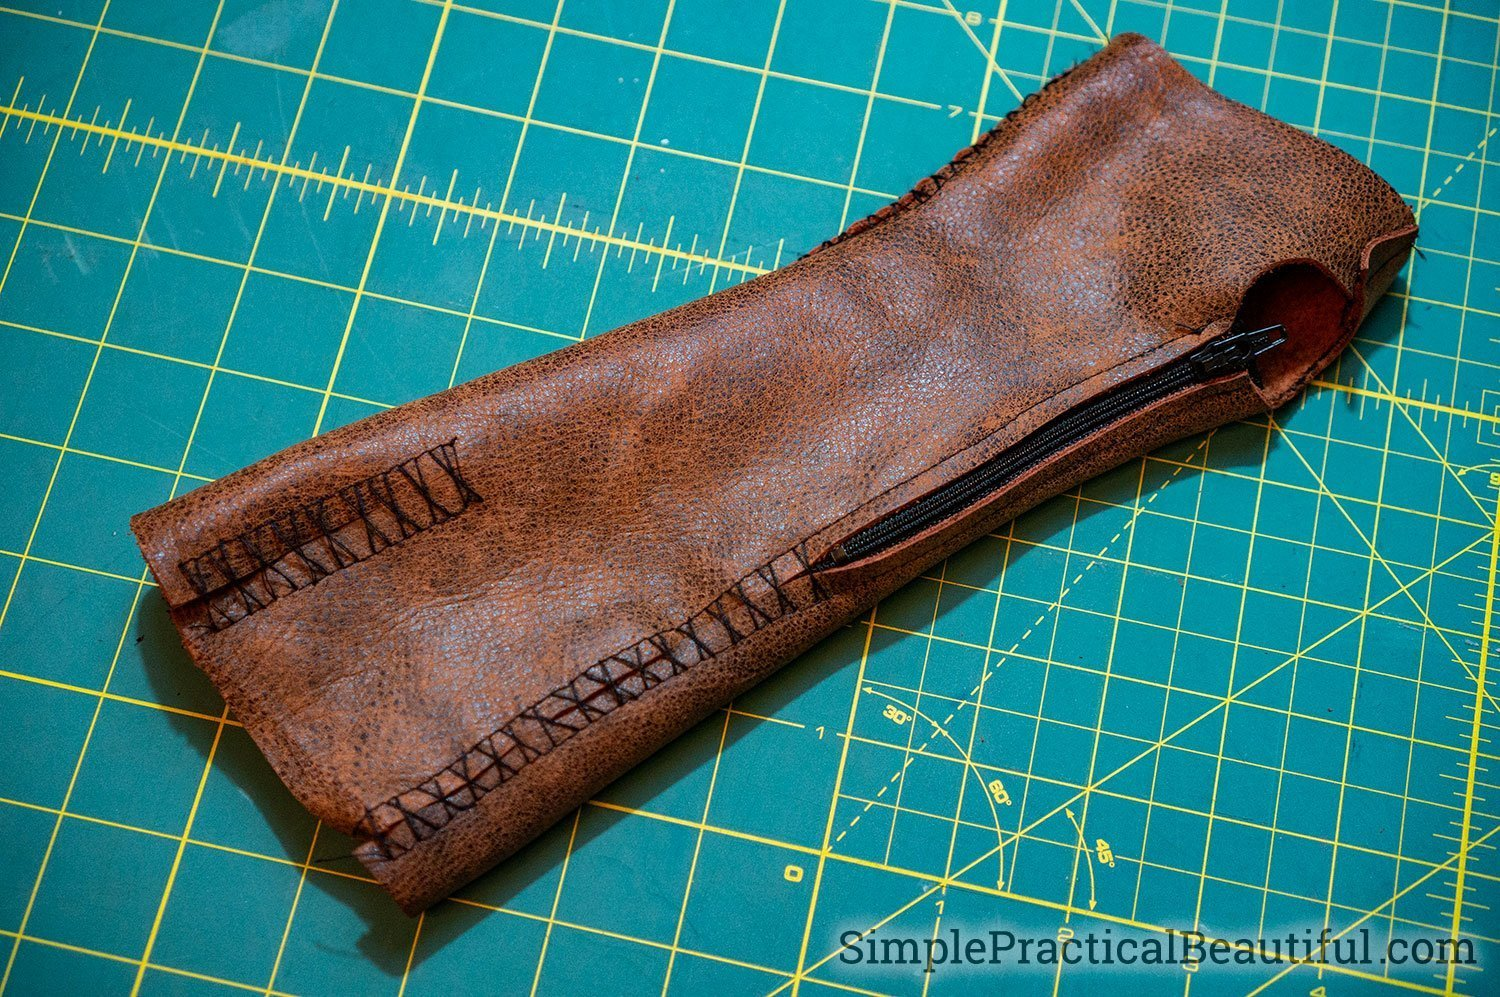 Make fingerless leather gloves by hand sewing the leather pieces together